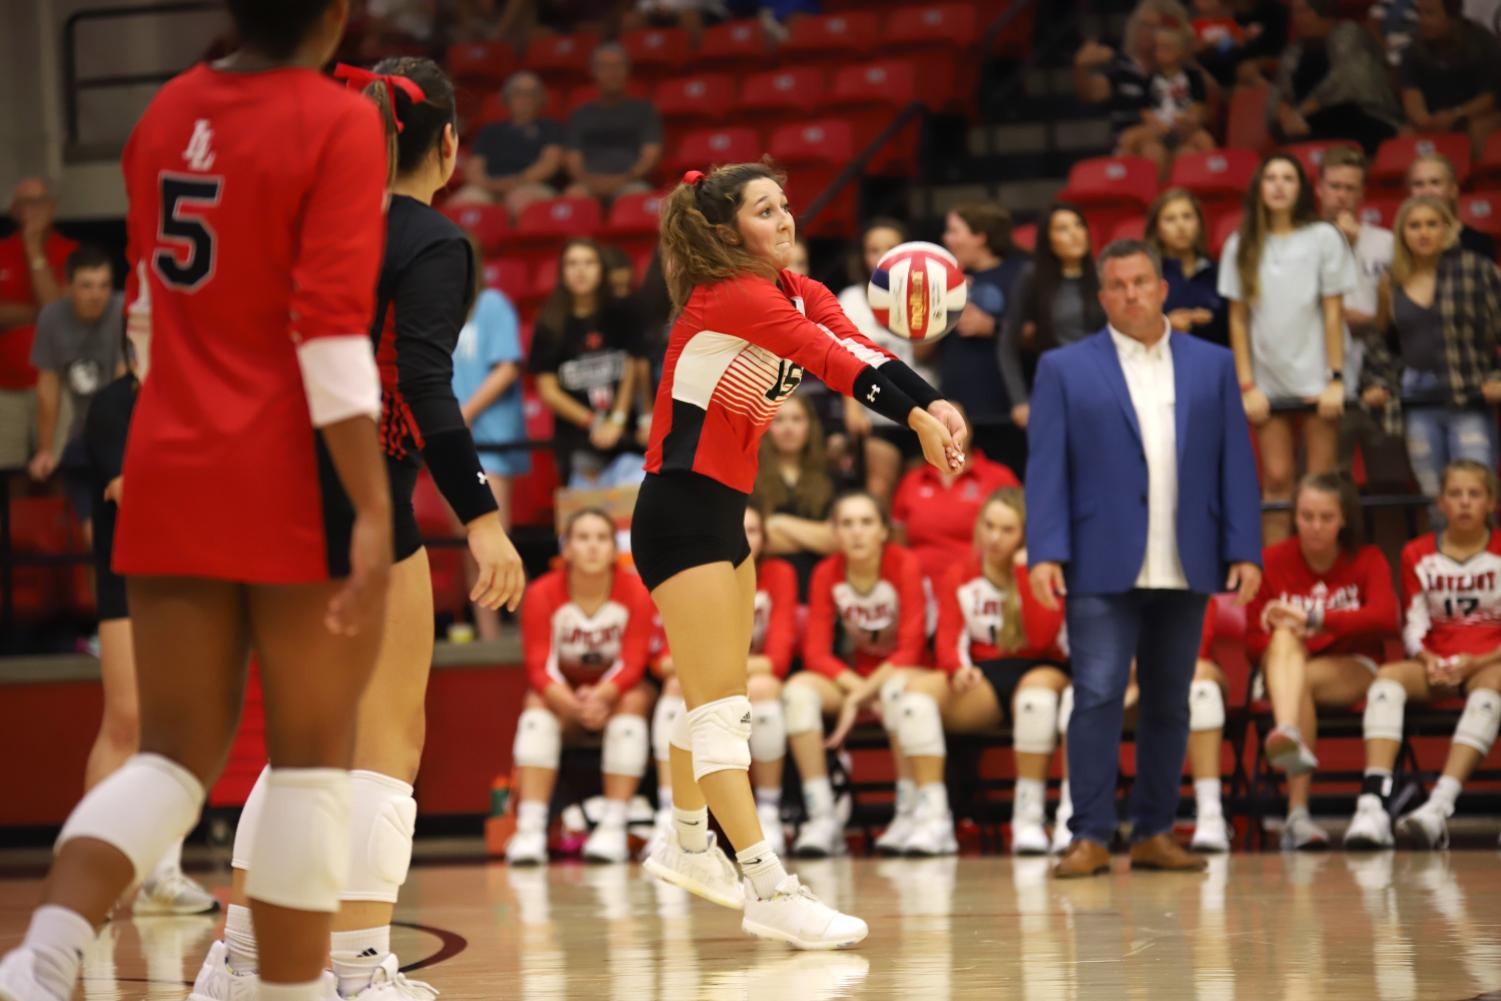 Senior+Emma+Johnson+defends+a+hit+from+the+right+side+to+keep+the+ball+in+play.+Johnson+will+be+heading+to+St.+Edwards+University+to+play+volleyball+at+the+collegiate+level+in+the+fall+of+2020.